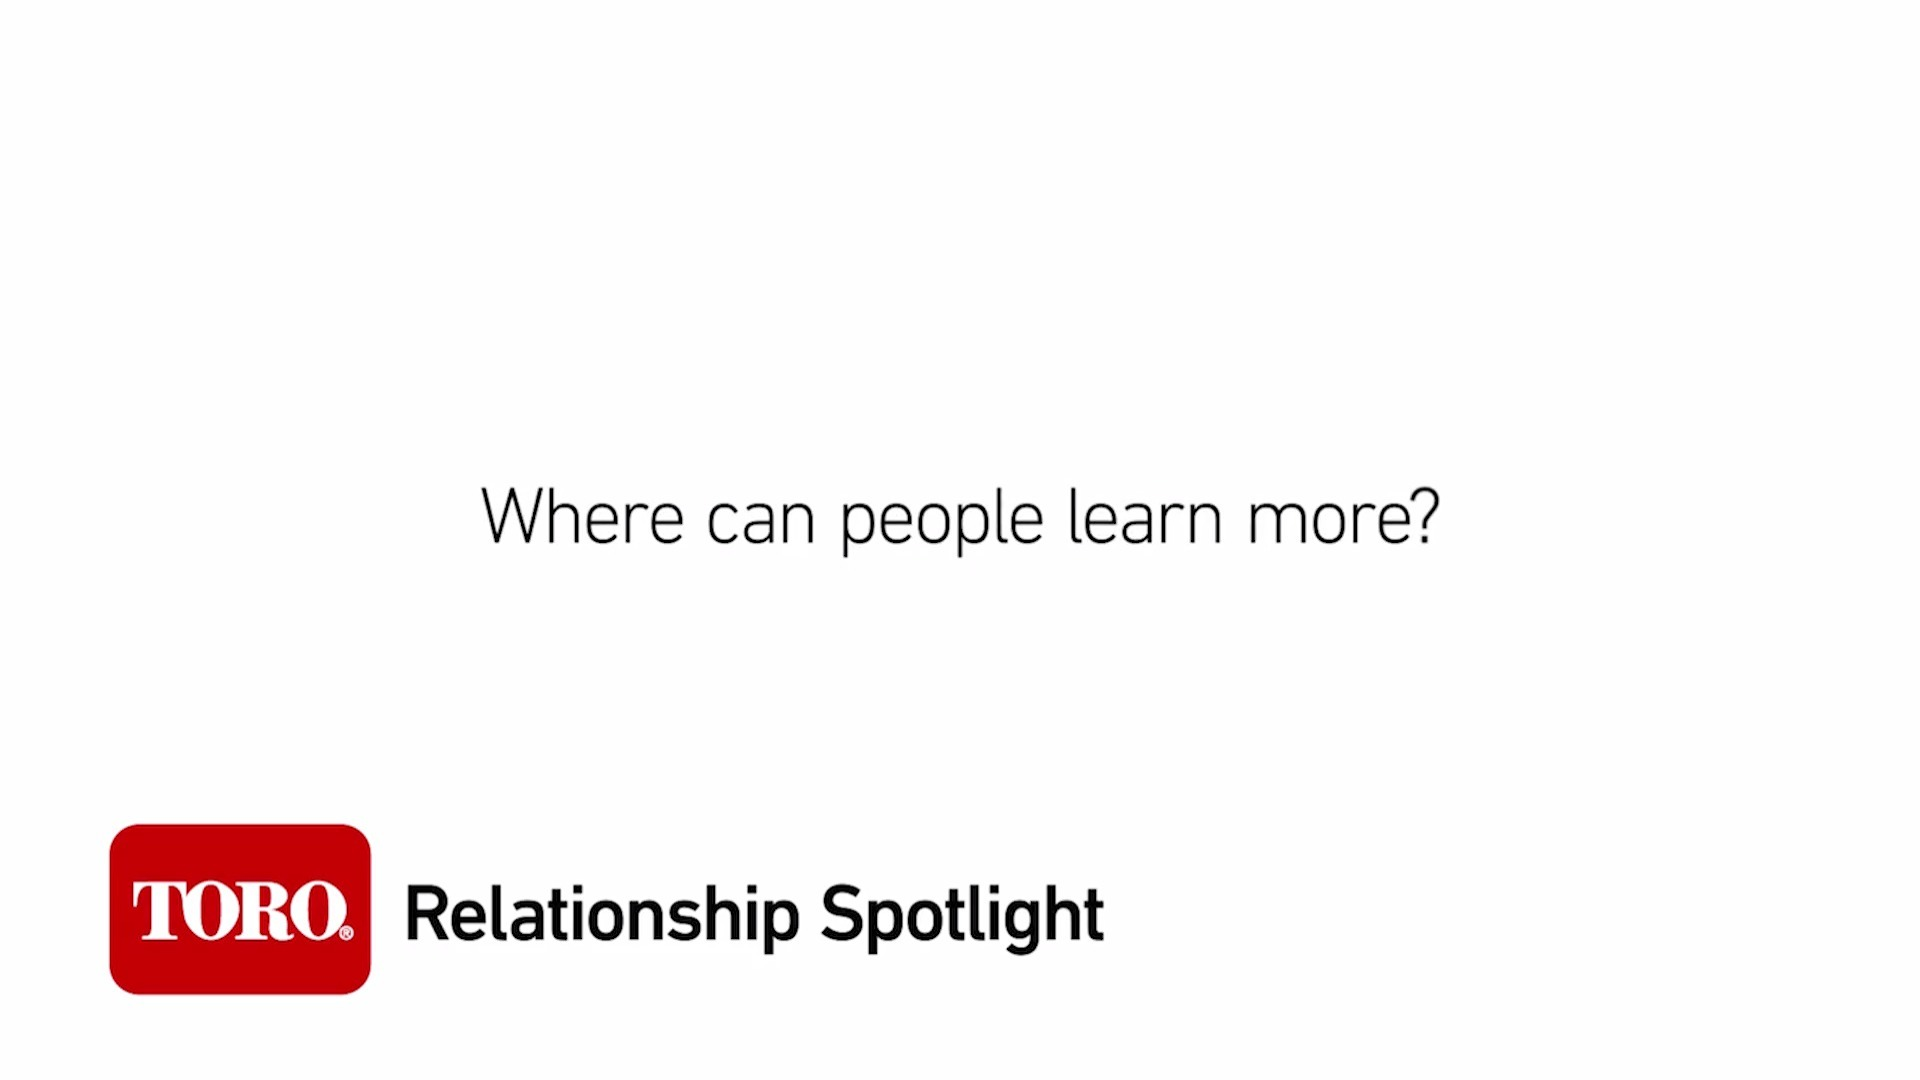 Relationship Spotlight: Learn More